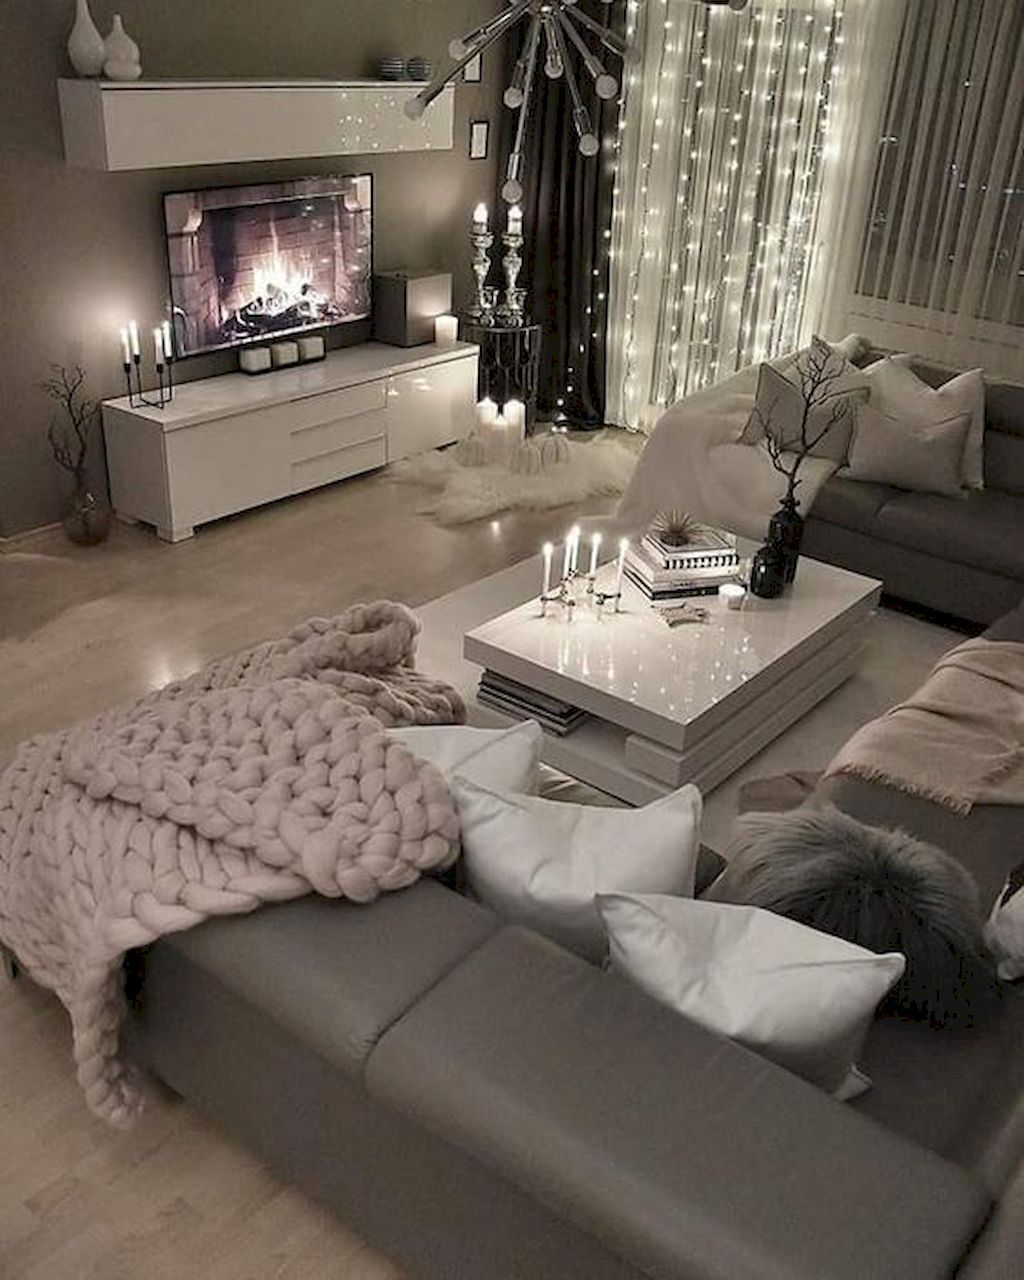 Inspiring Sitting Room Decor Ideas For Inviting And Cozy: 70 Apartment Living Room Decorating Ideas